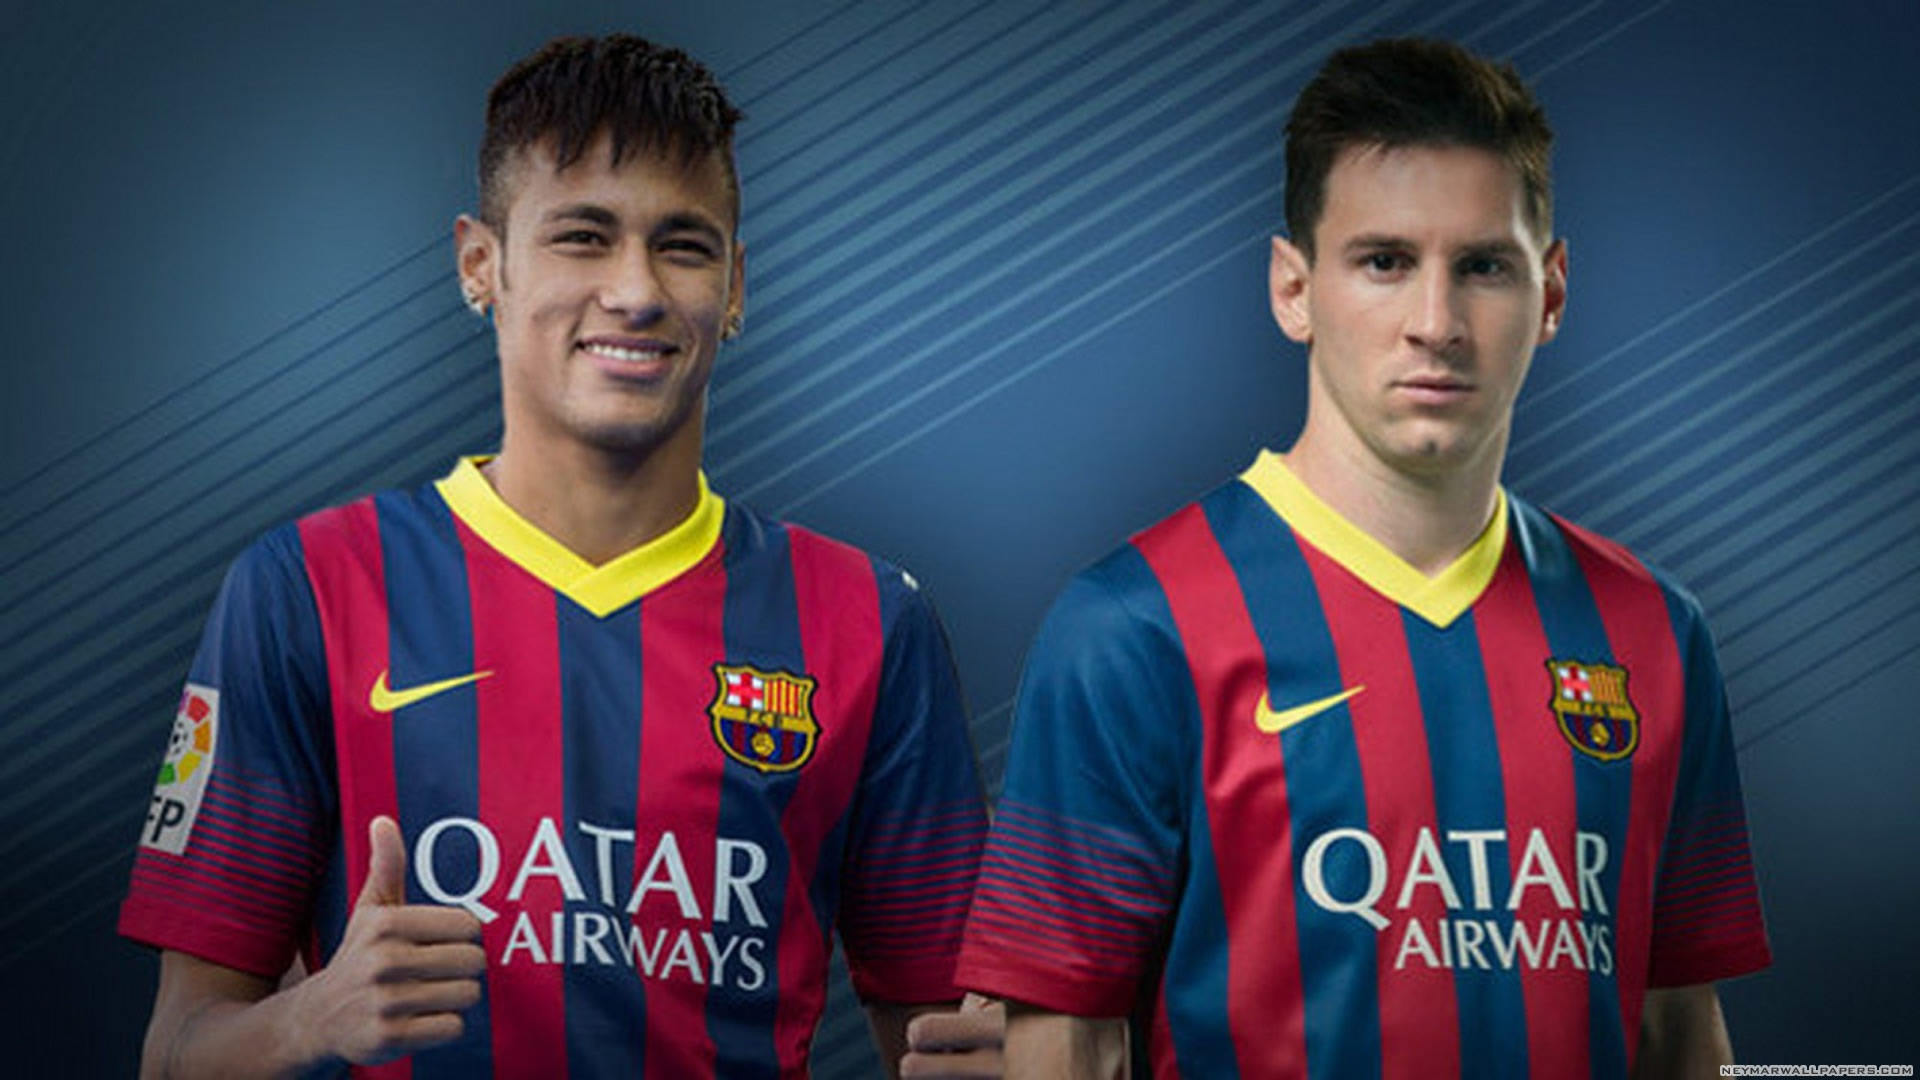 3bc45fd1472 Neymar and Messi wallpaper 2 Neymar Wallpapers 1920x1080